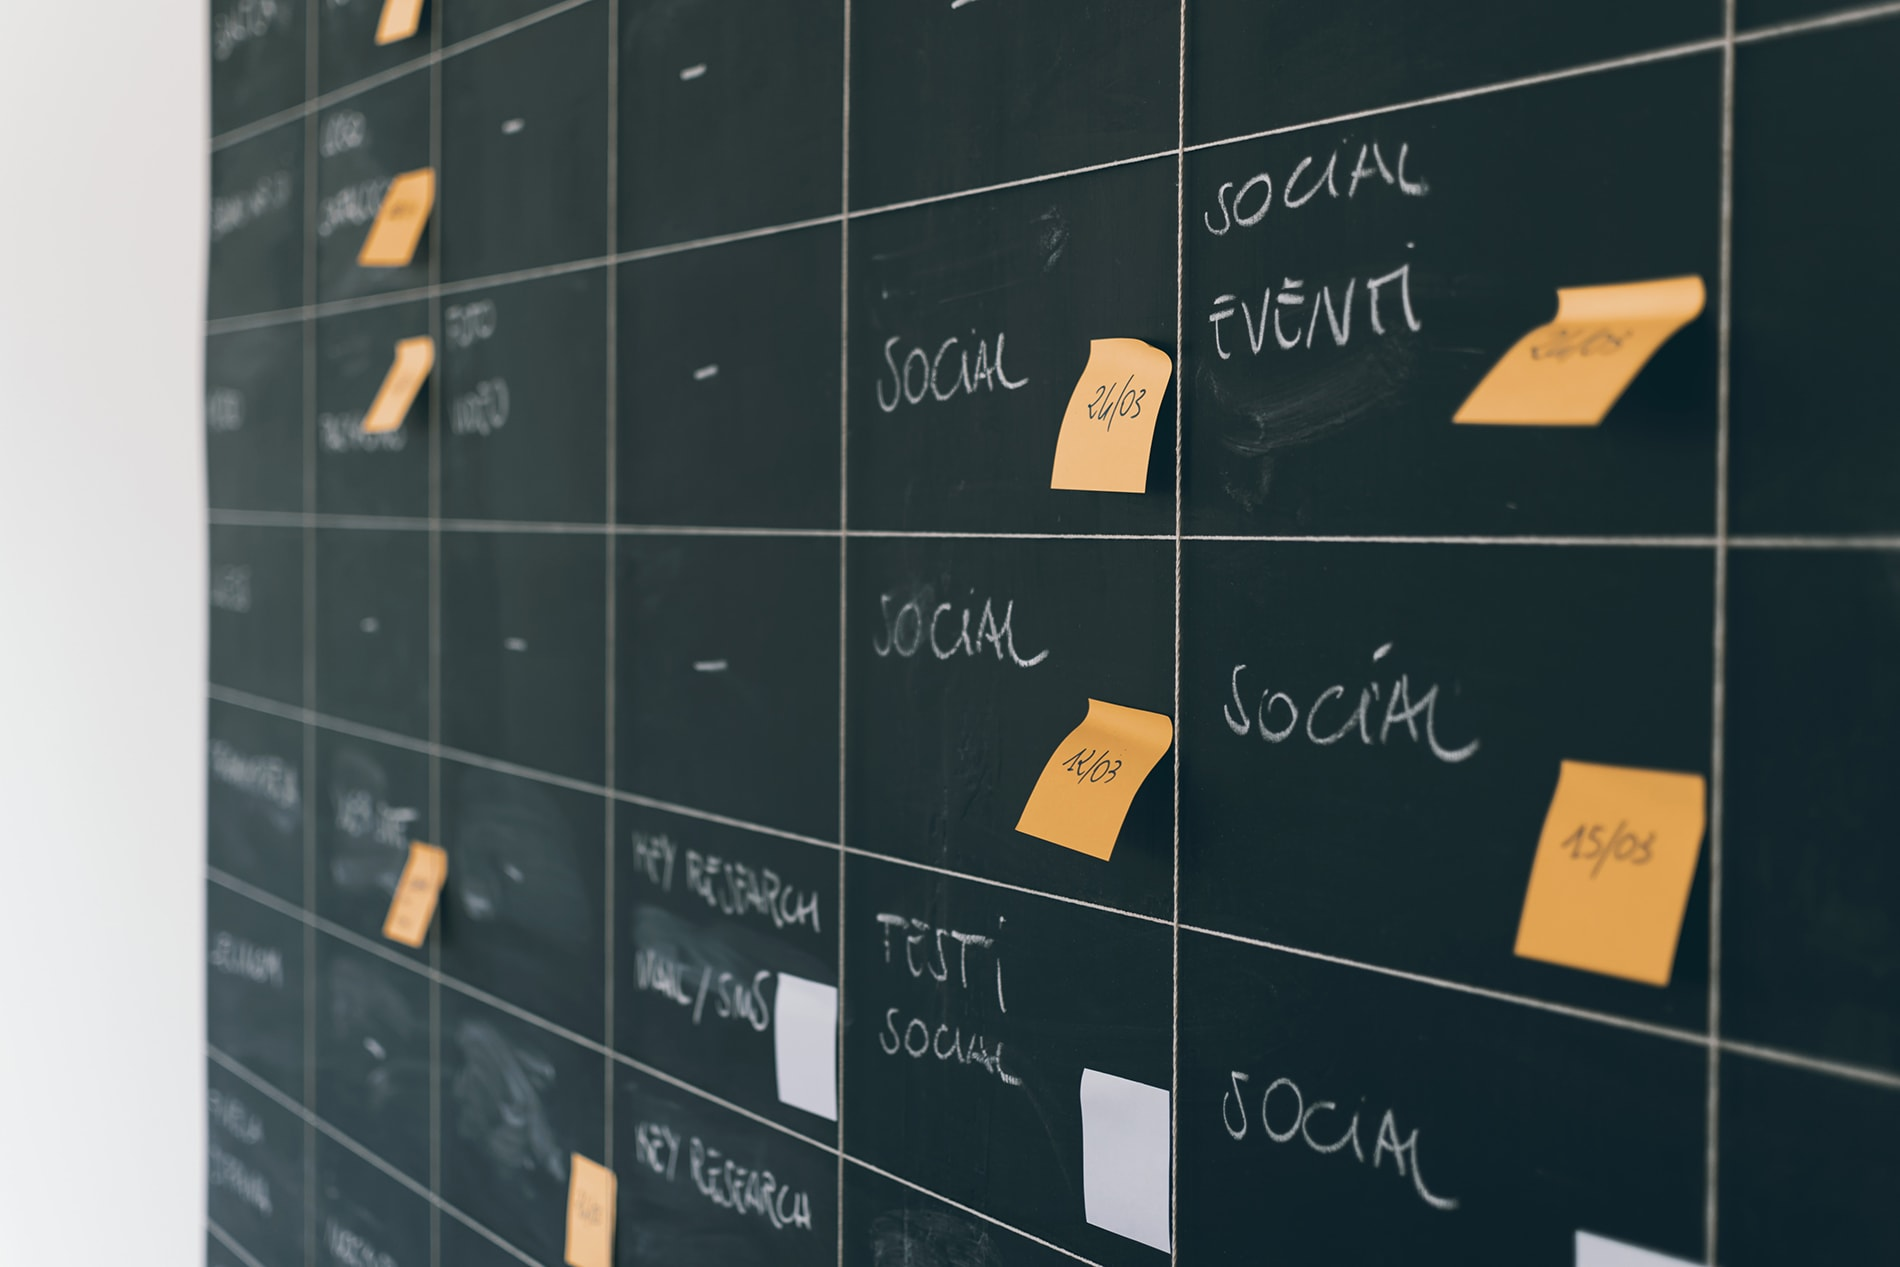 social-media-project-plan-calendar-black-board-min